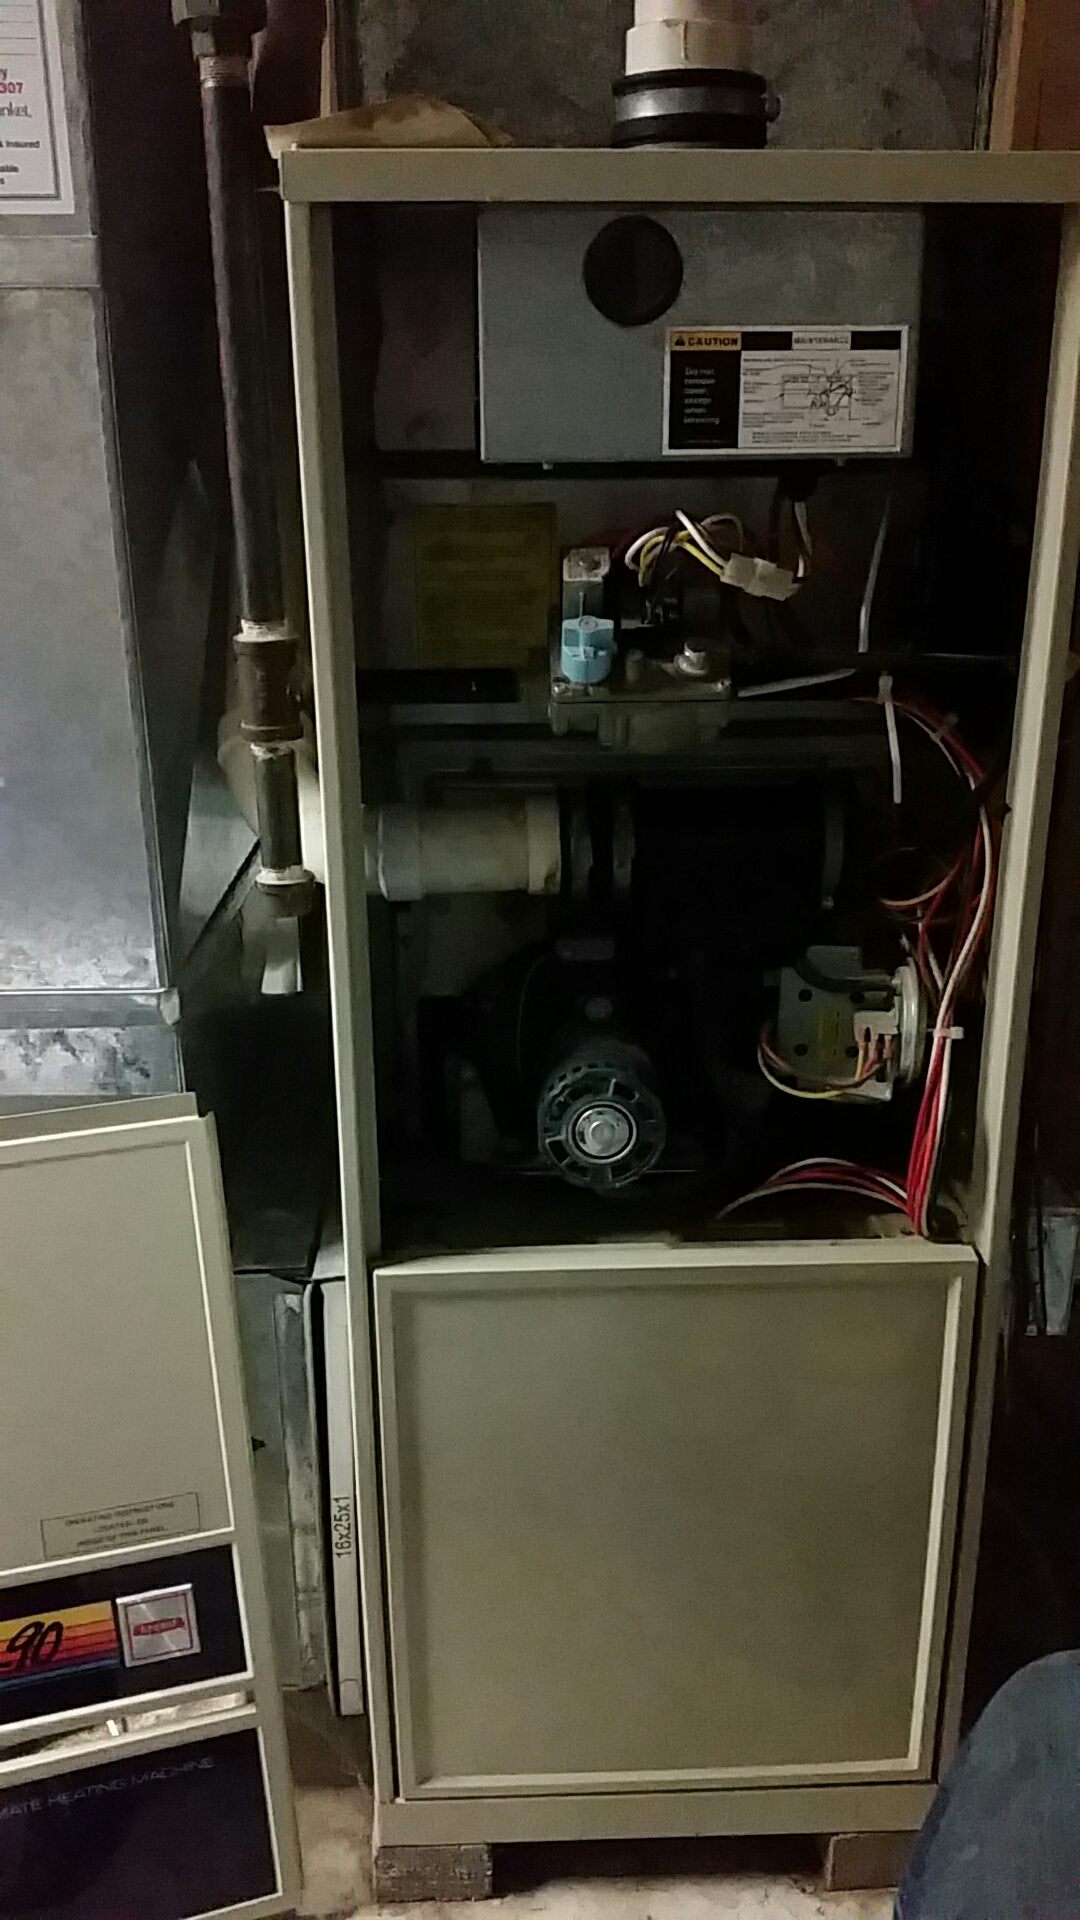 Sun Prairie, WI - 27 y.o Bryant 60k unit. System showing it's age. Areas of concern (Inducer boot leaks, weak blower capacitor, etc.)  Recommend Security Blanket Membership as well as a Free estimate on new equipment to compare cost of repair vs investment.